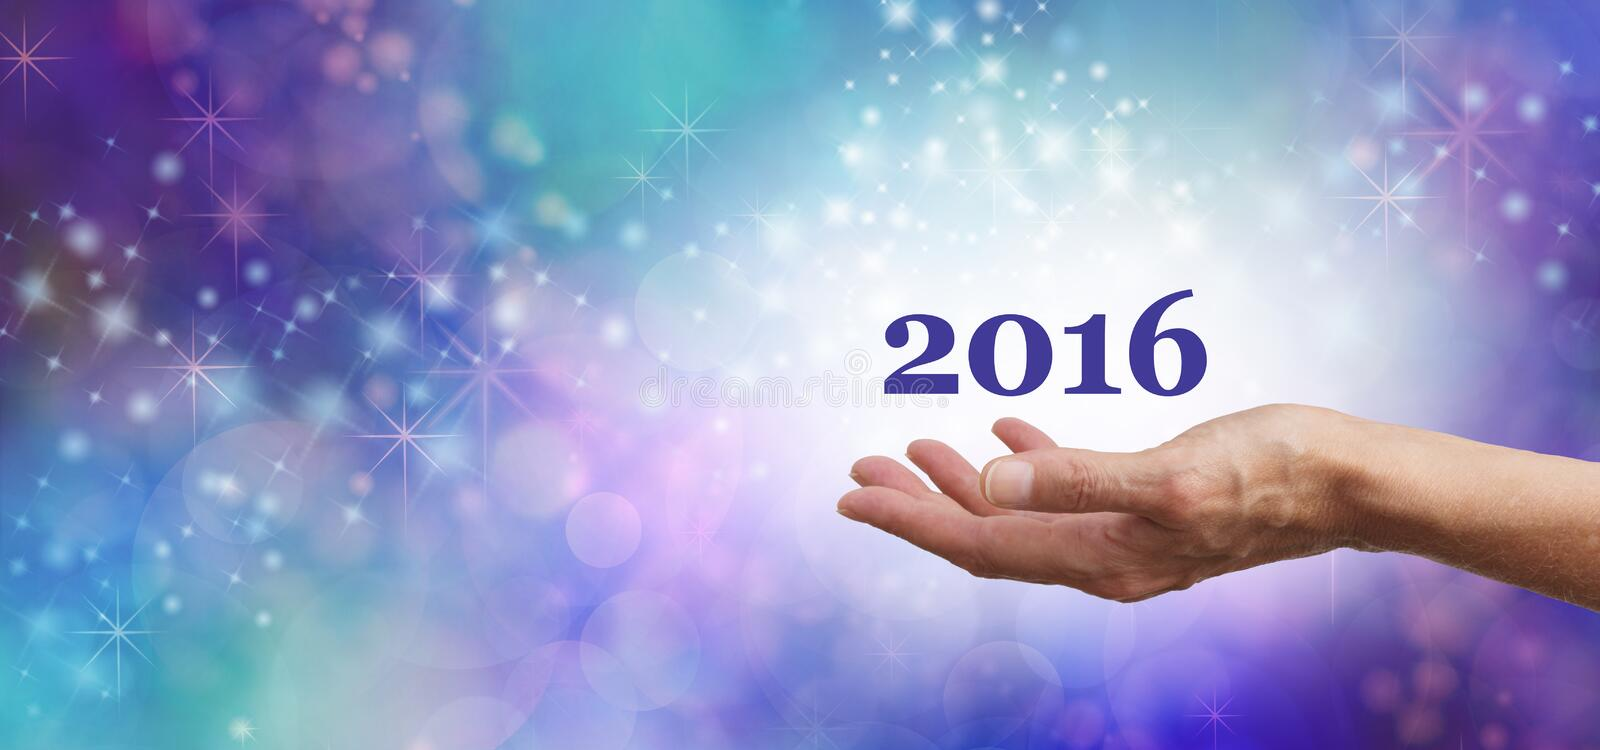 Welcome 2016 Celebration Banner royalty free stock photos